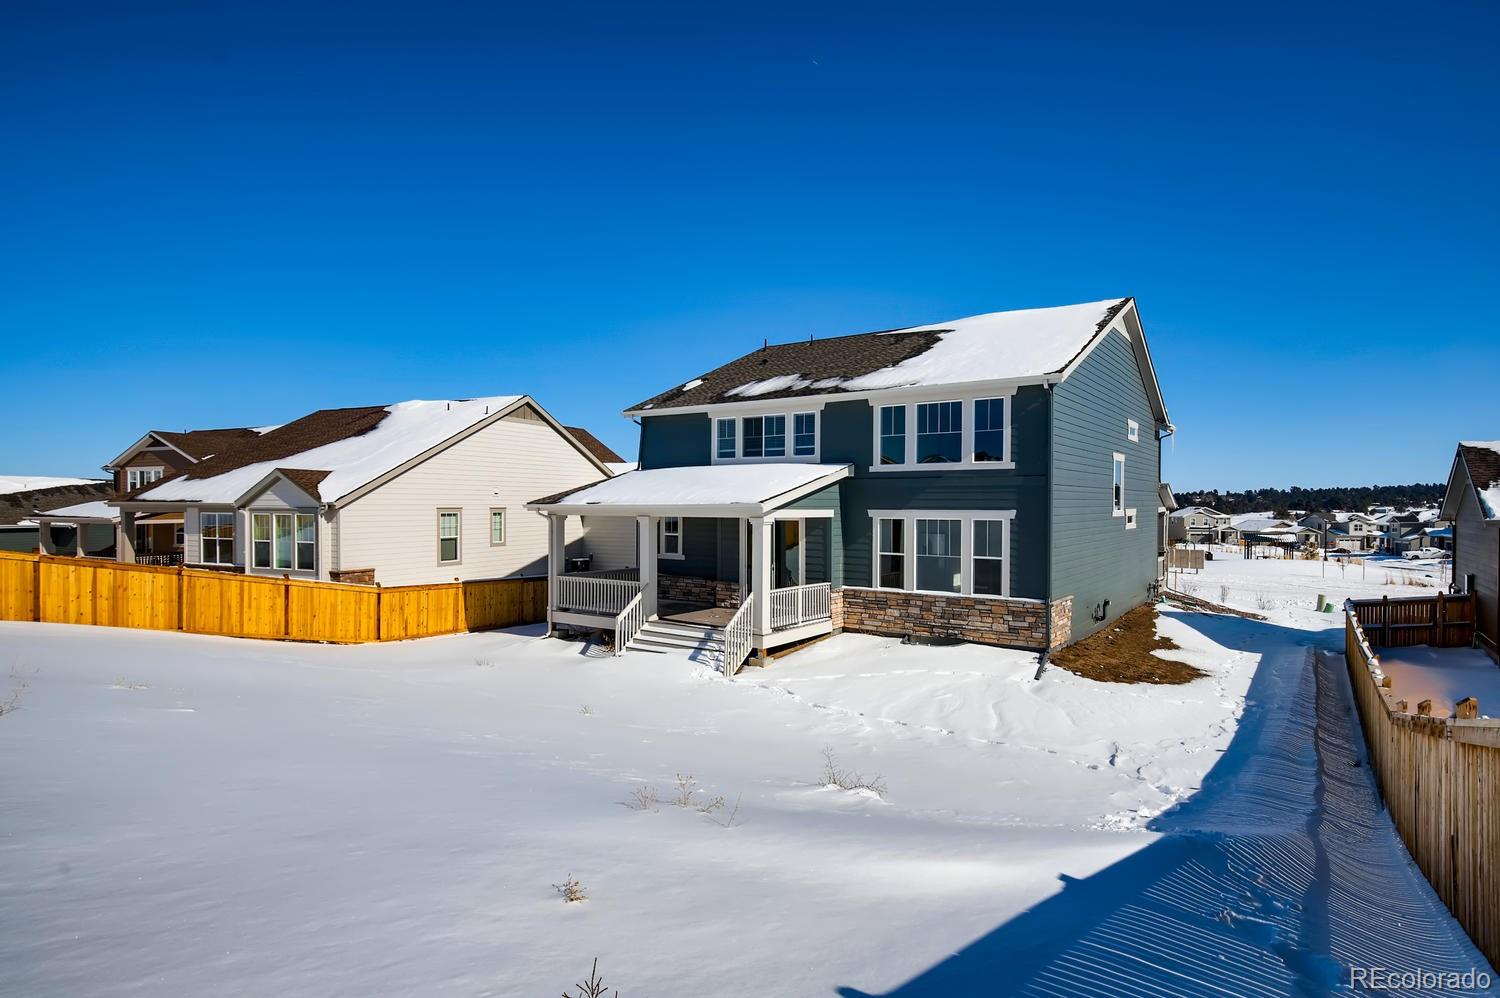 MLS# 4928211 - 36 - 1295 Blackhaw Street, Elizabeth, CO 80107